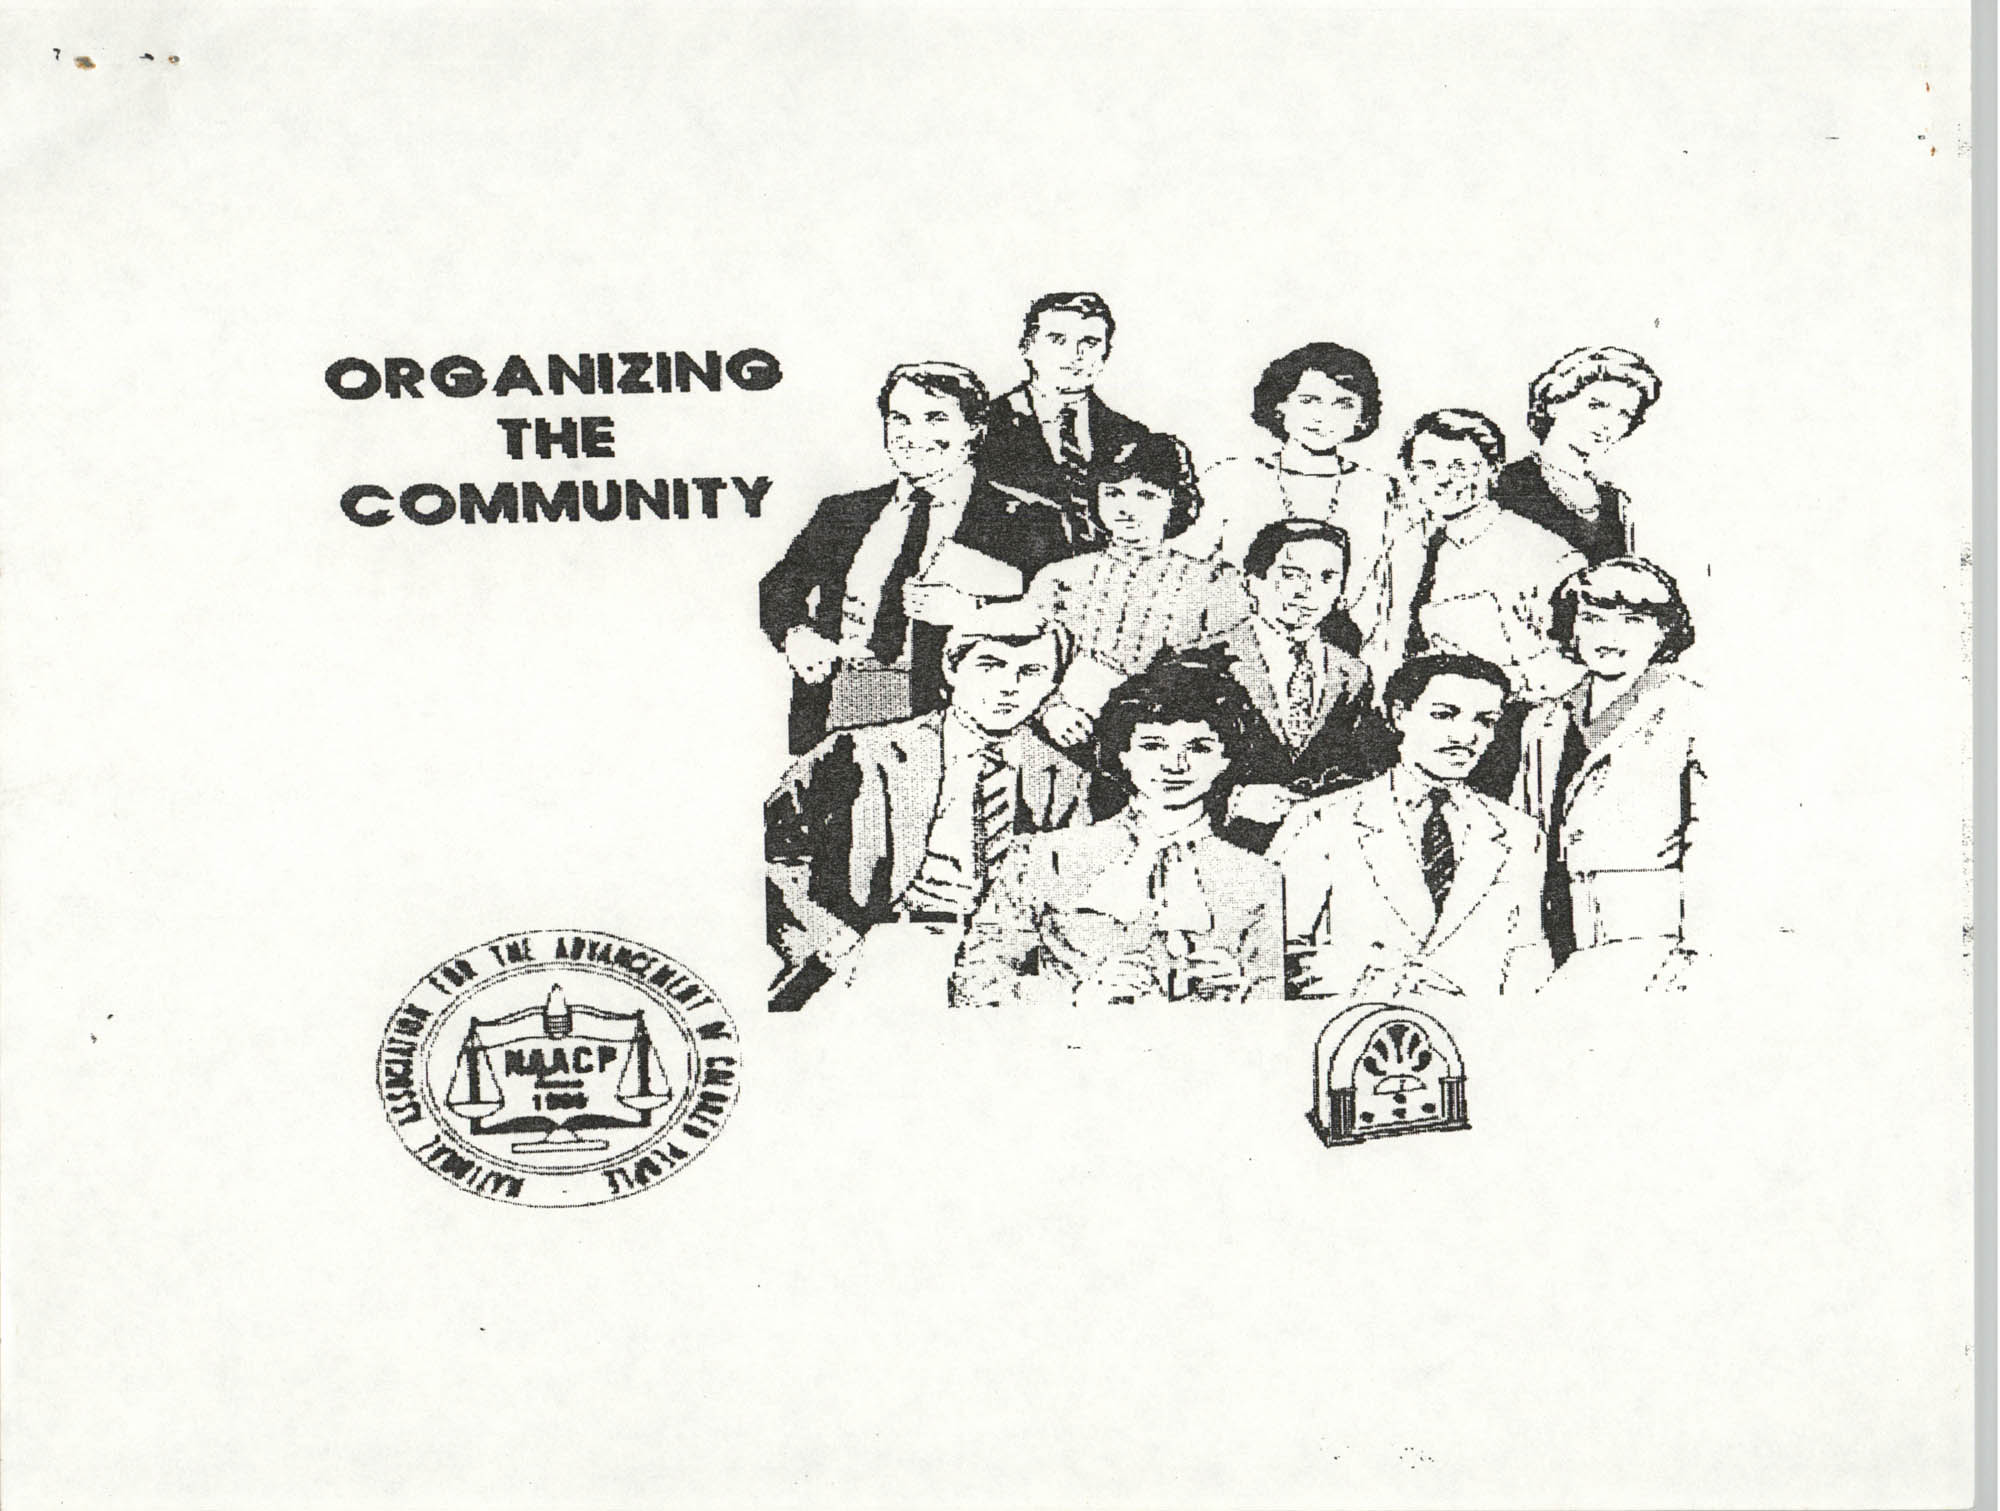 Community Organization Methods, NAACP, Page 1